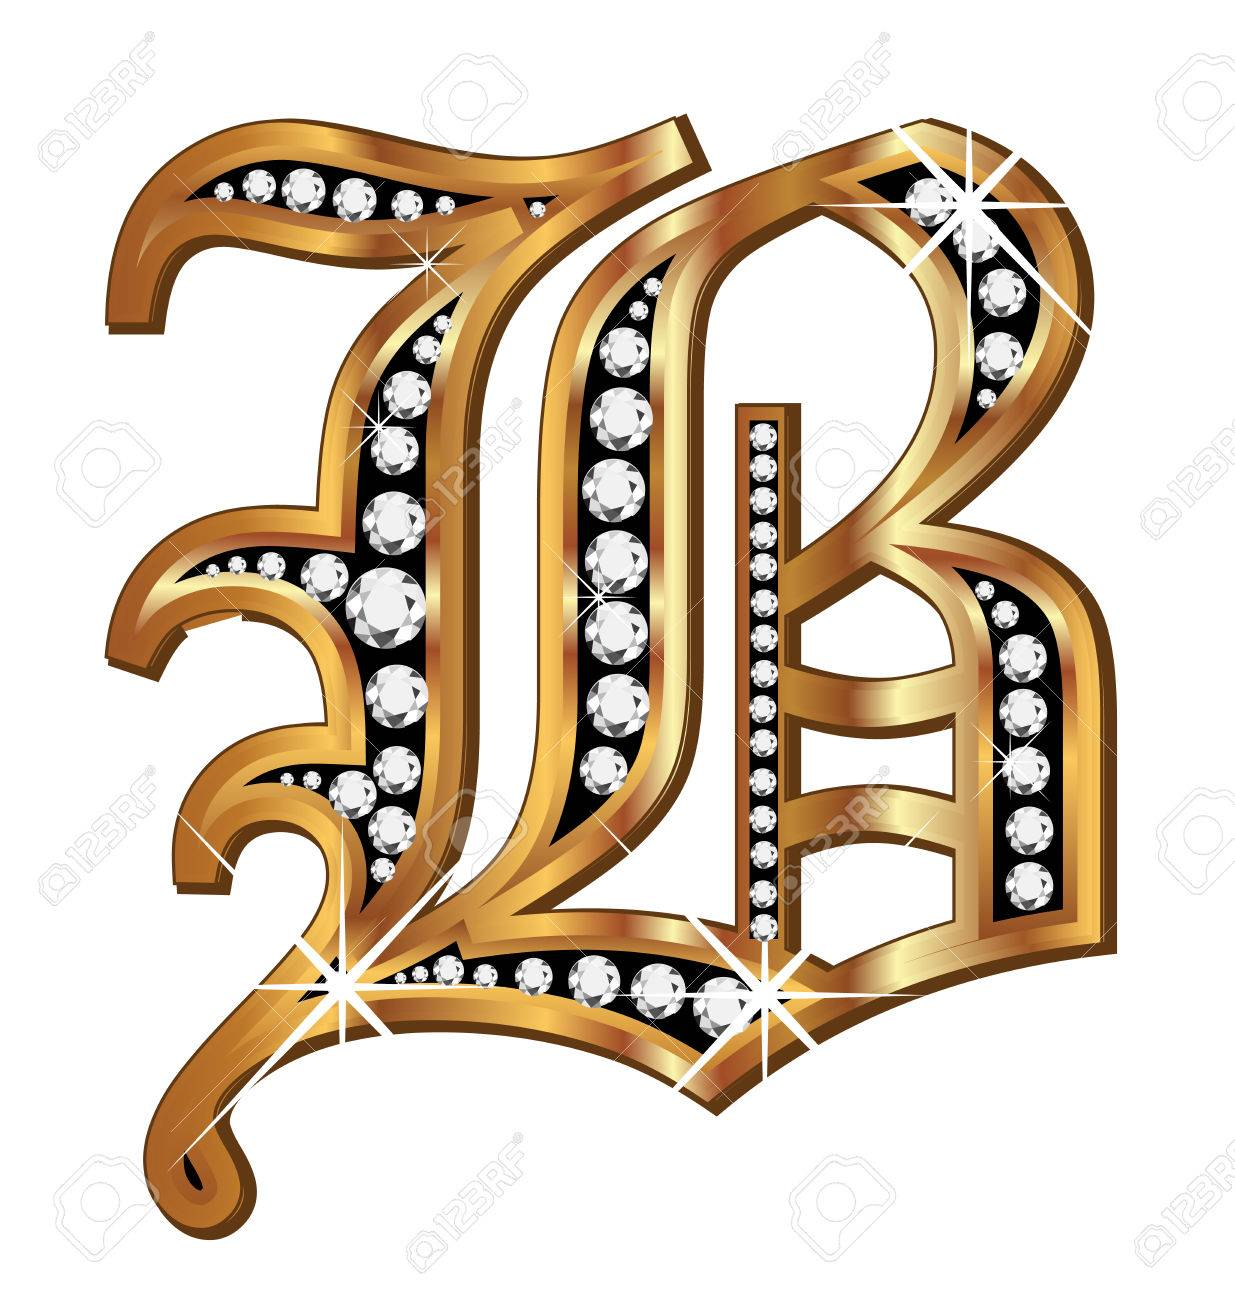 B gold and diamond bling old vintage letter